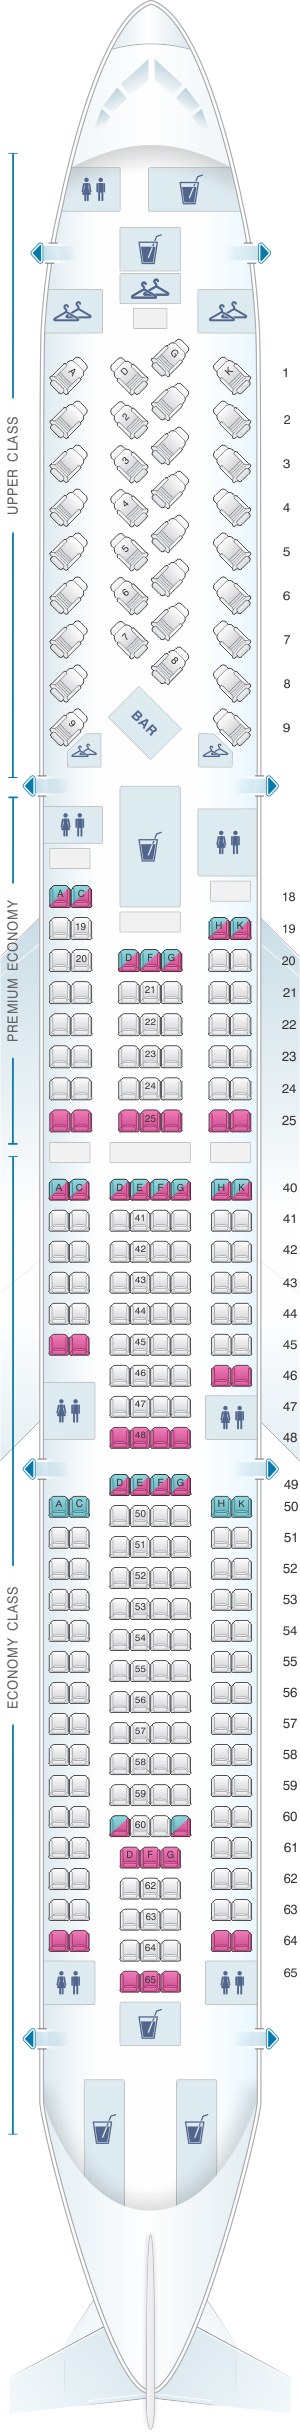 Seat map for Virgin Atlantic Airbus A330 300